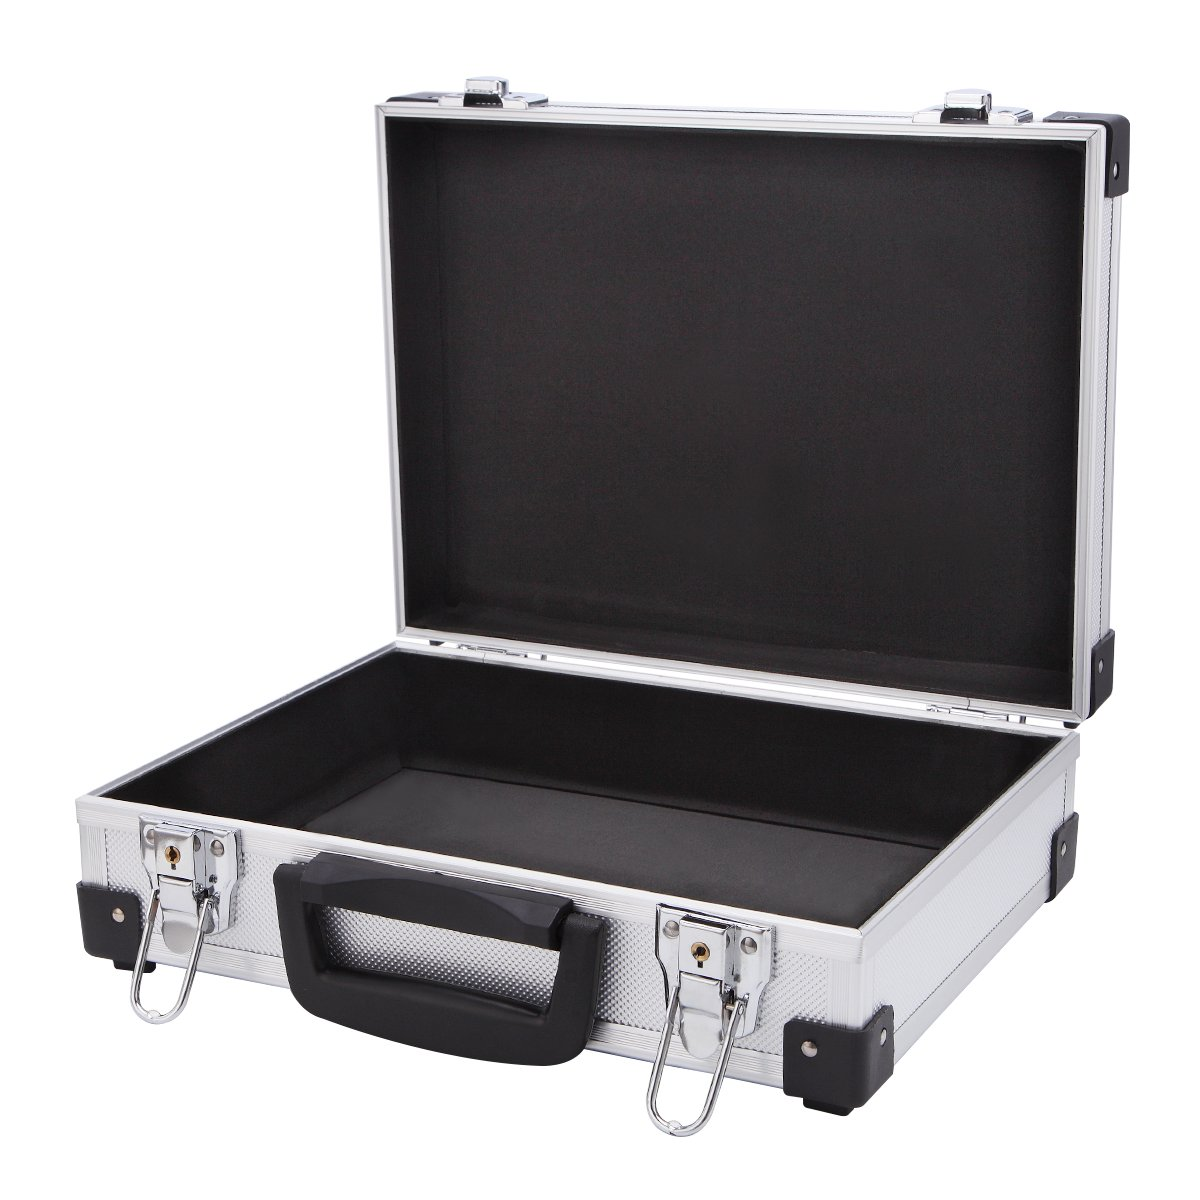 Professional Aluminum Hard Hand Gun Cases Office File Briefcase Outdoor Travel Flight Cases Home Tool Boxes with Quick Locks by ALUBOX (Image #2)